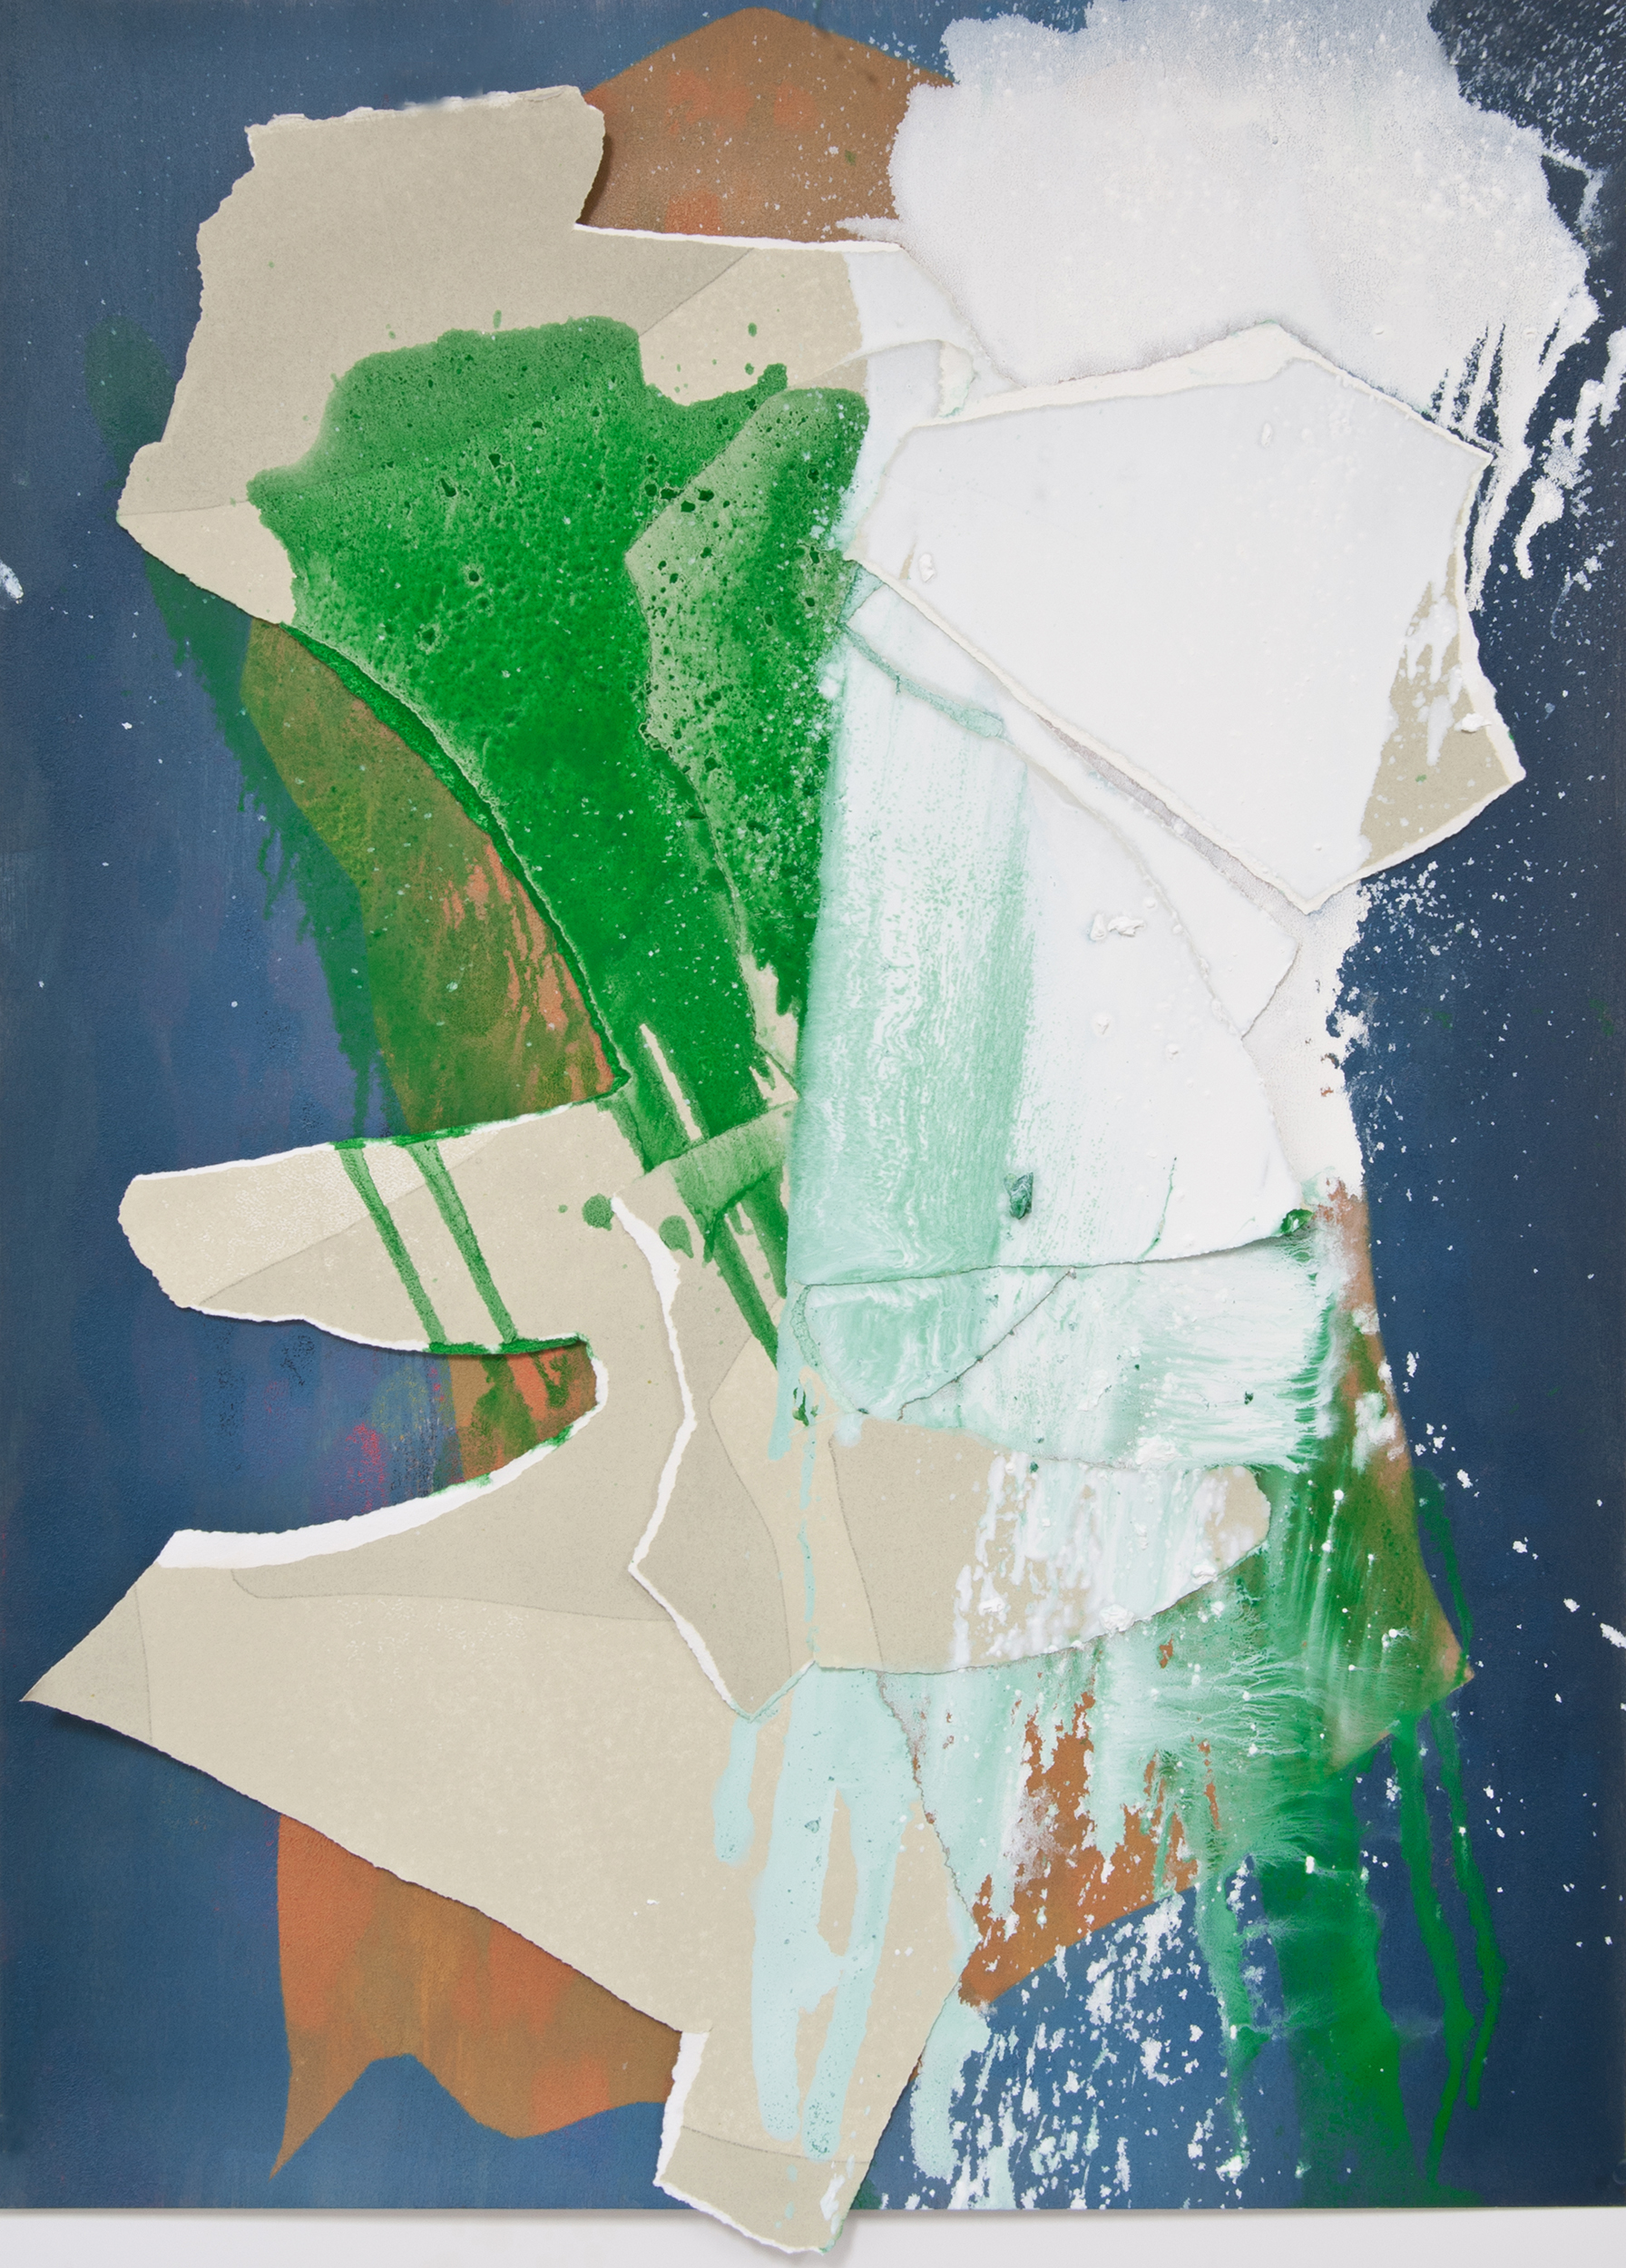 """Kay Harvey   """"About Ice Series 5"""" 2013. Collage, Oil on Paper. 43 x 31 x 2"""""""